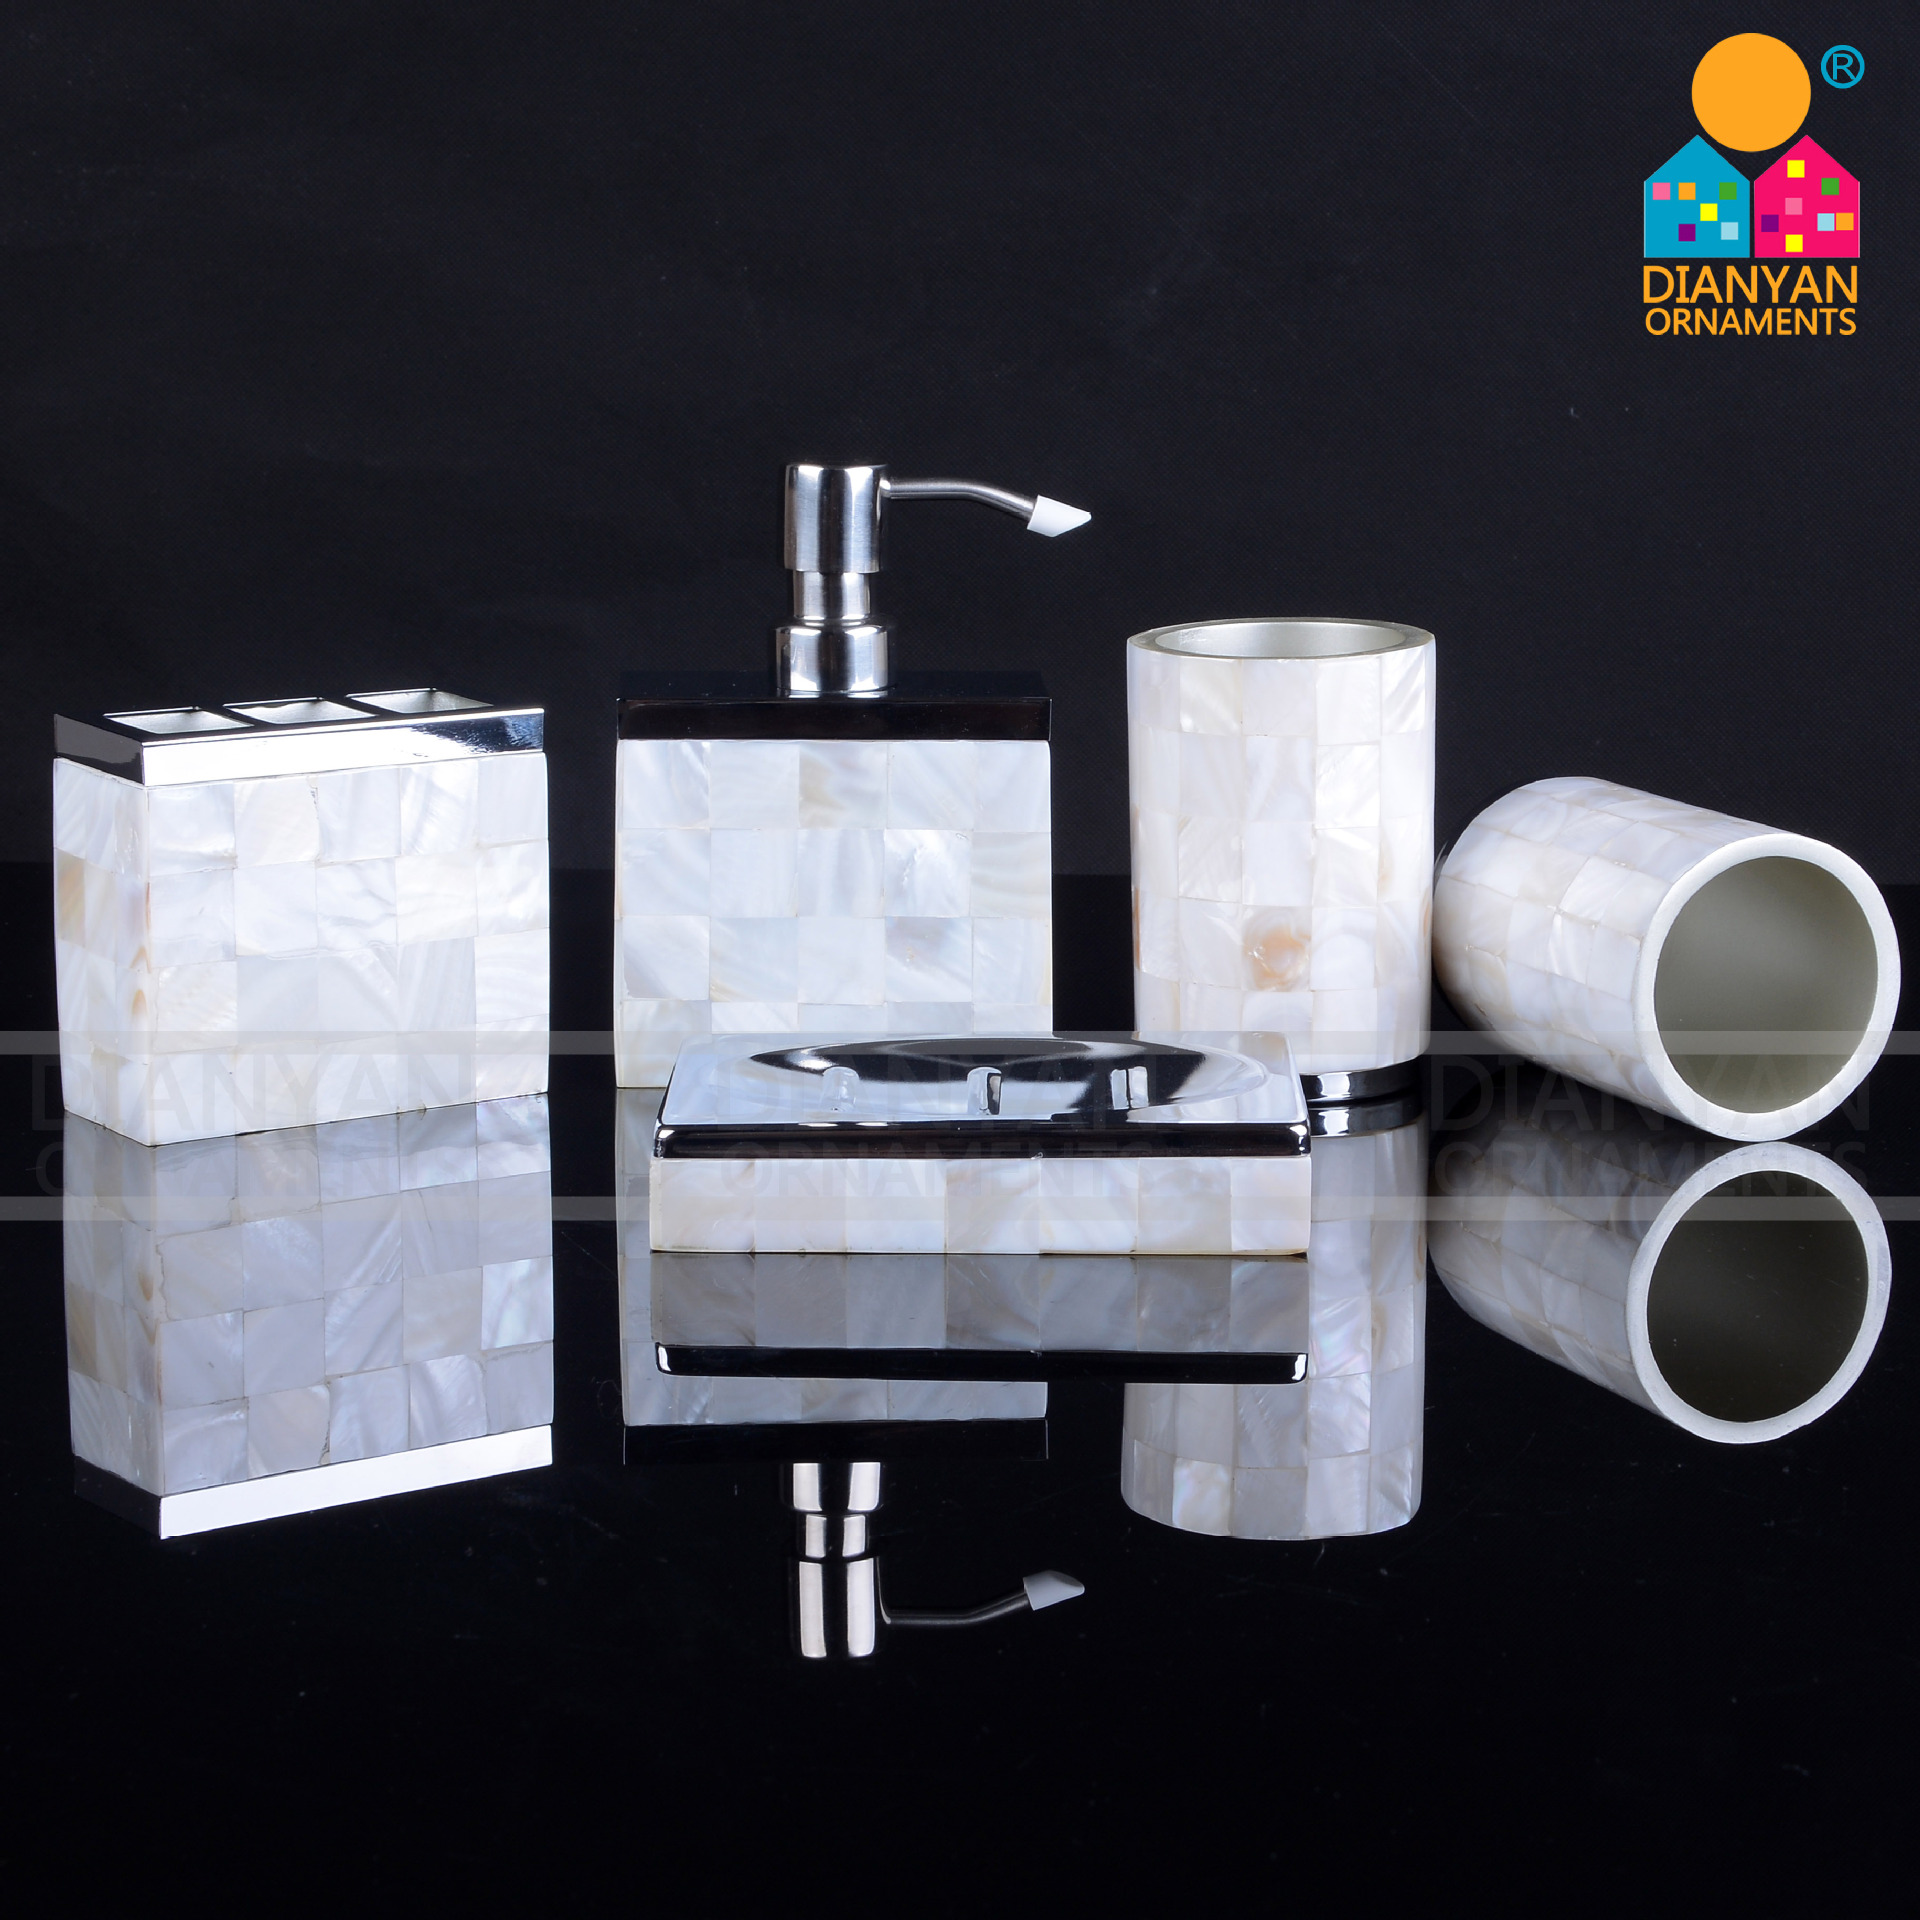 Creative hardware shell bathroom five-piece hotel bathroom wash set natural shell bathroom kit simple bathroom ceramic wash four piece suit cosmetics supply brush cup set gift lo861050